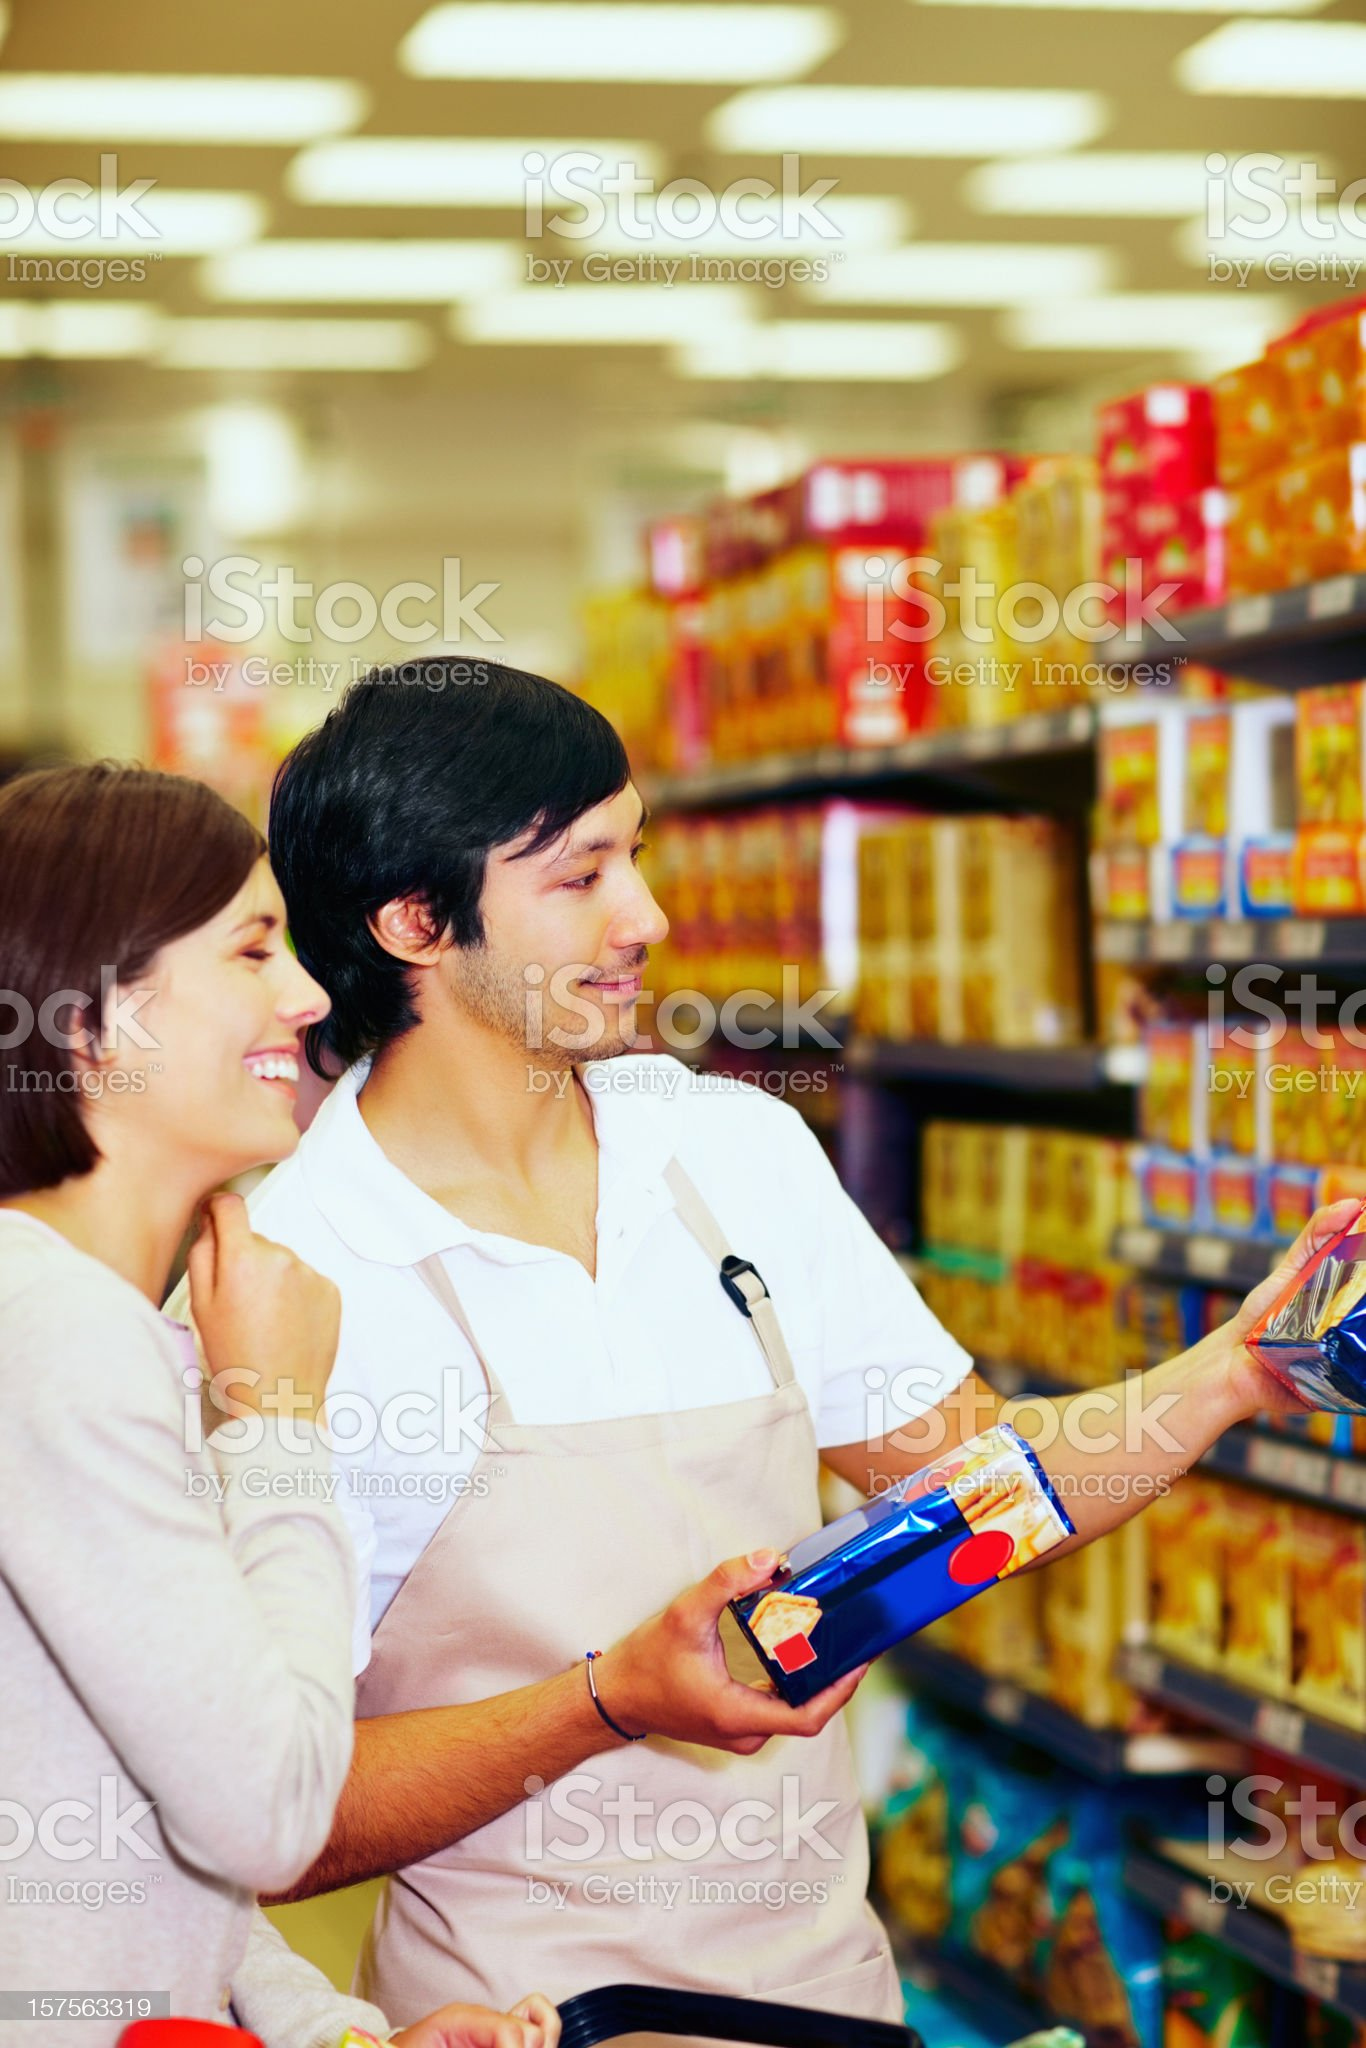 Supermarket employee assisting a customer with the products royalty-free stock photo